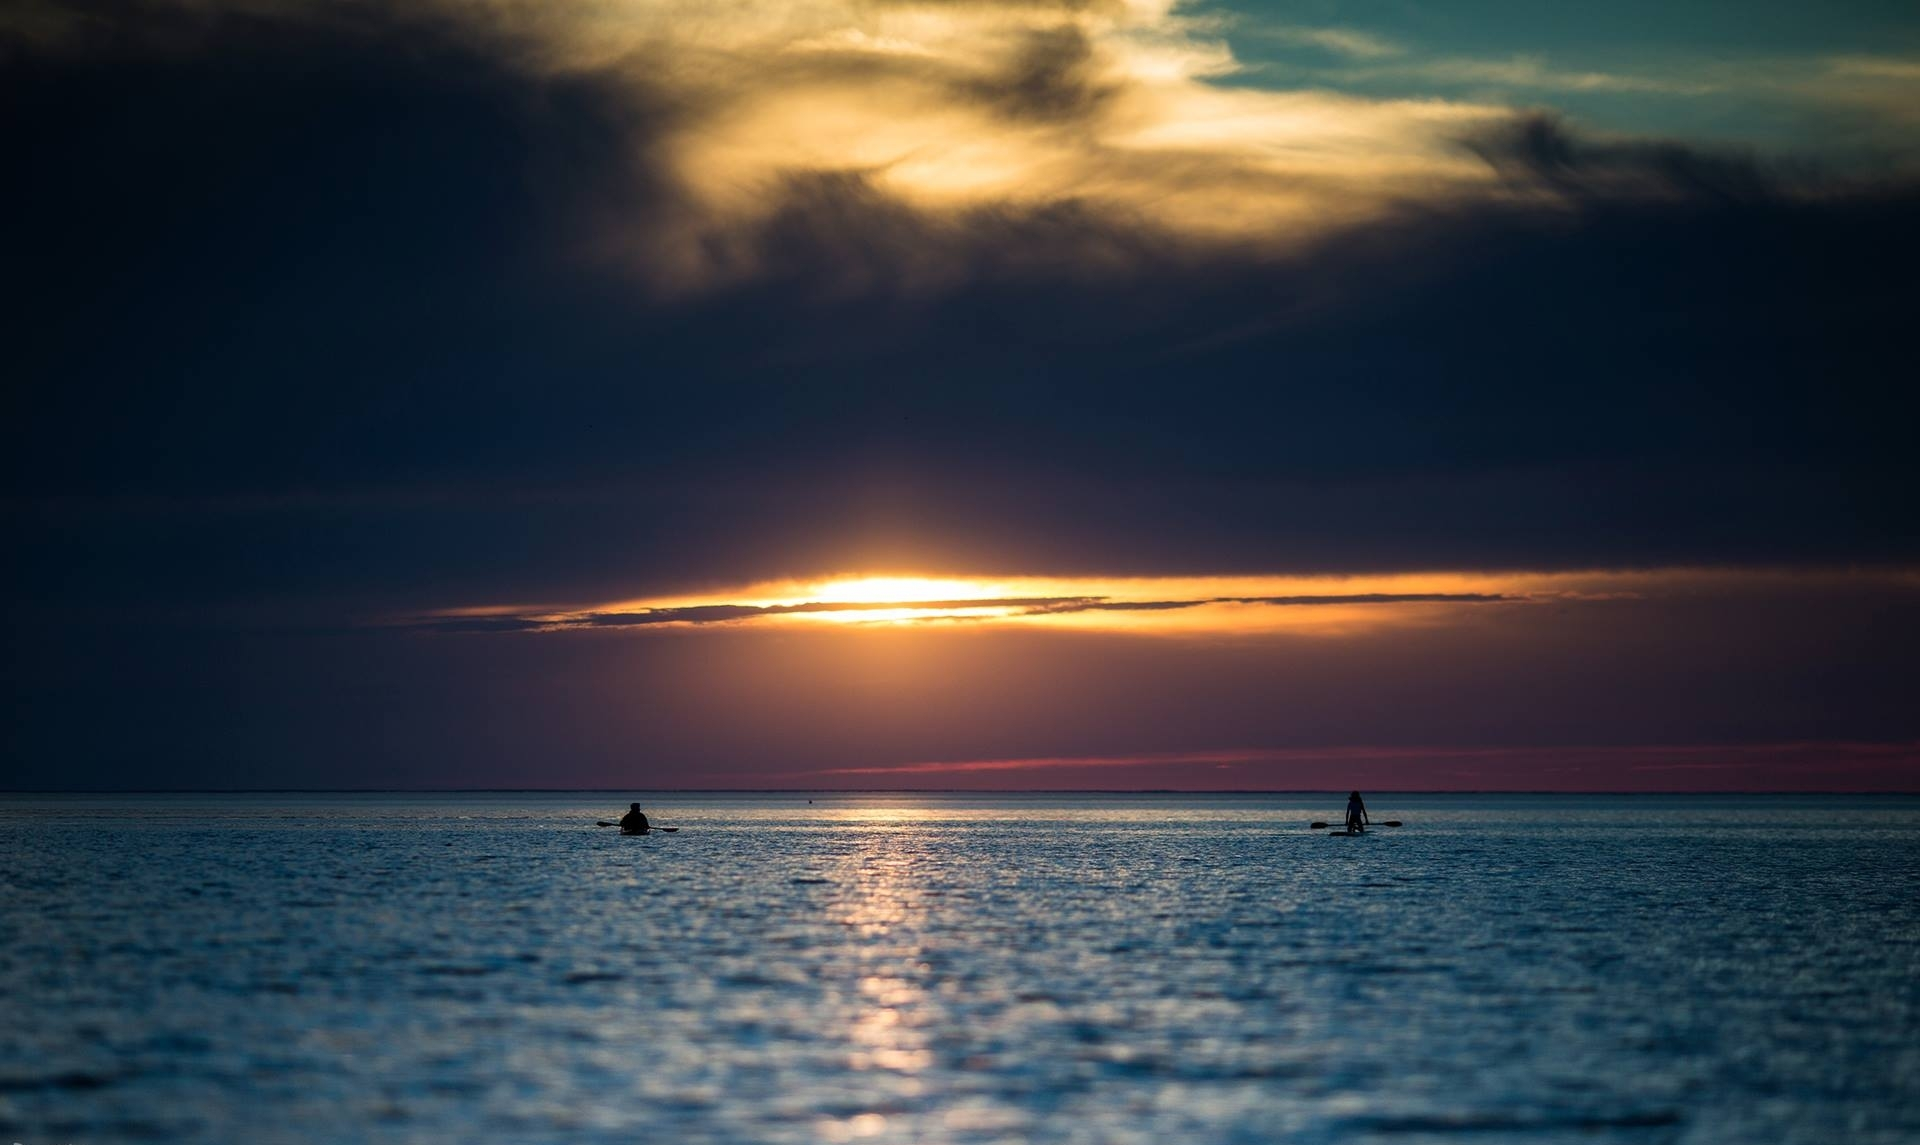 Paddle Board Rentals   We can deliver or come pick up your paddle board rental and make an adventure of your own   Click here